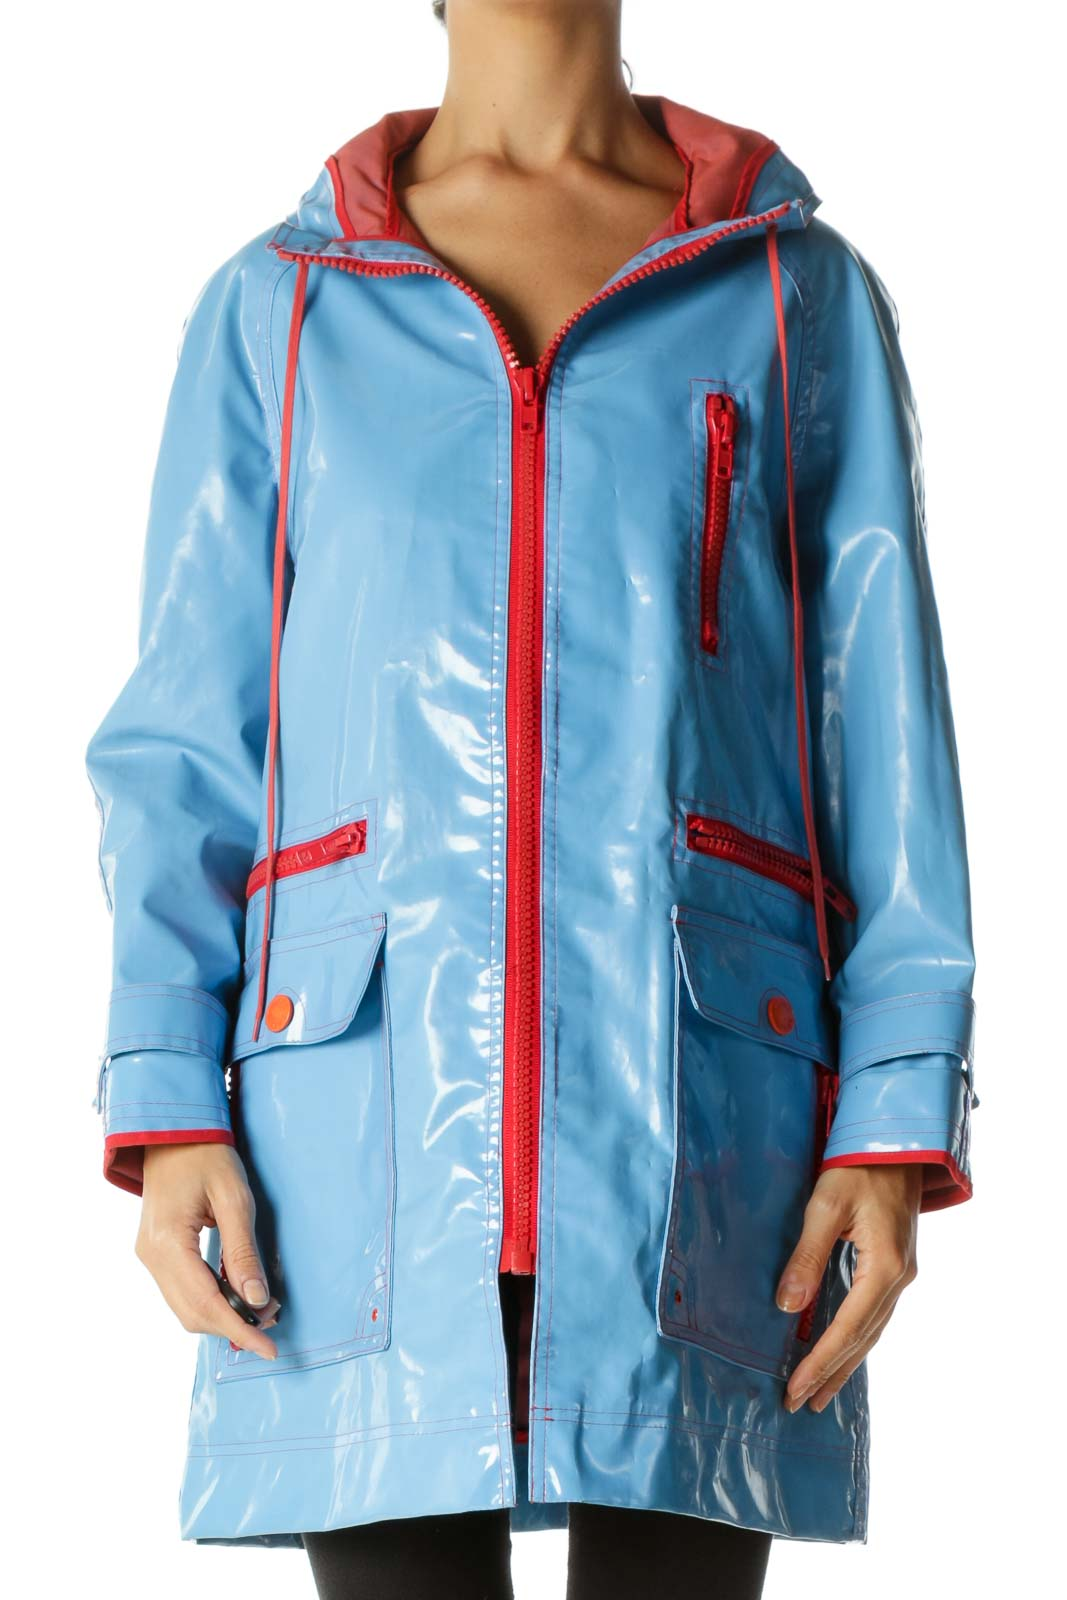 Blue Orange-Red Multi-Zippers Hooded Drawstring Weighted Rain Coat Front